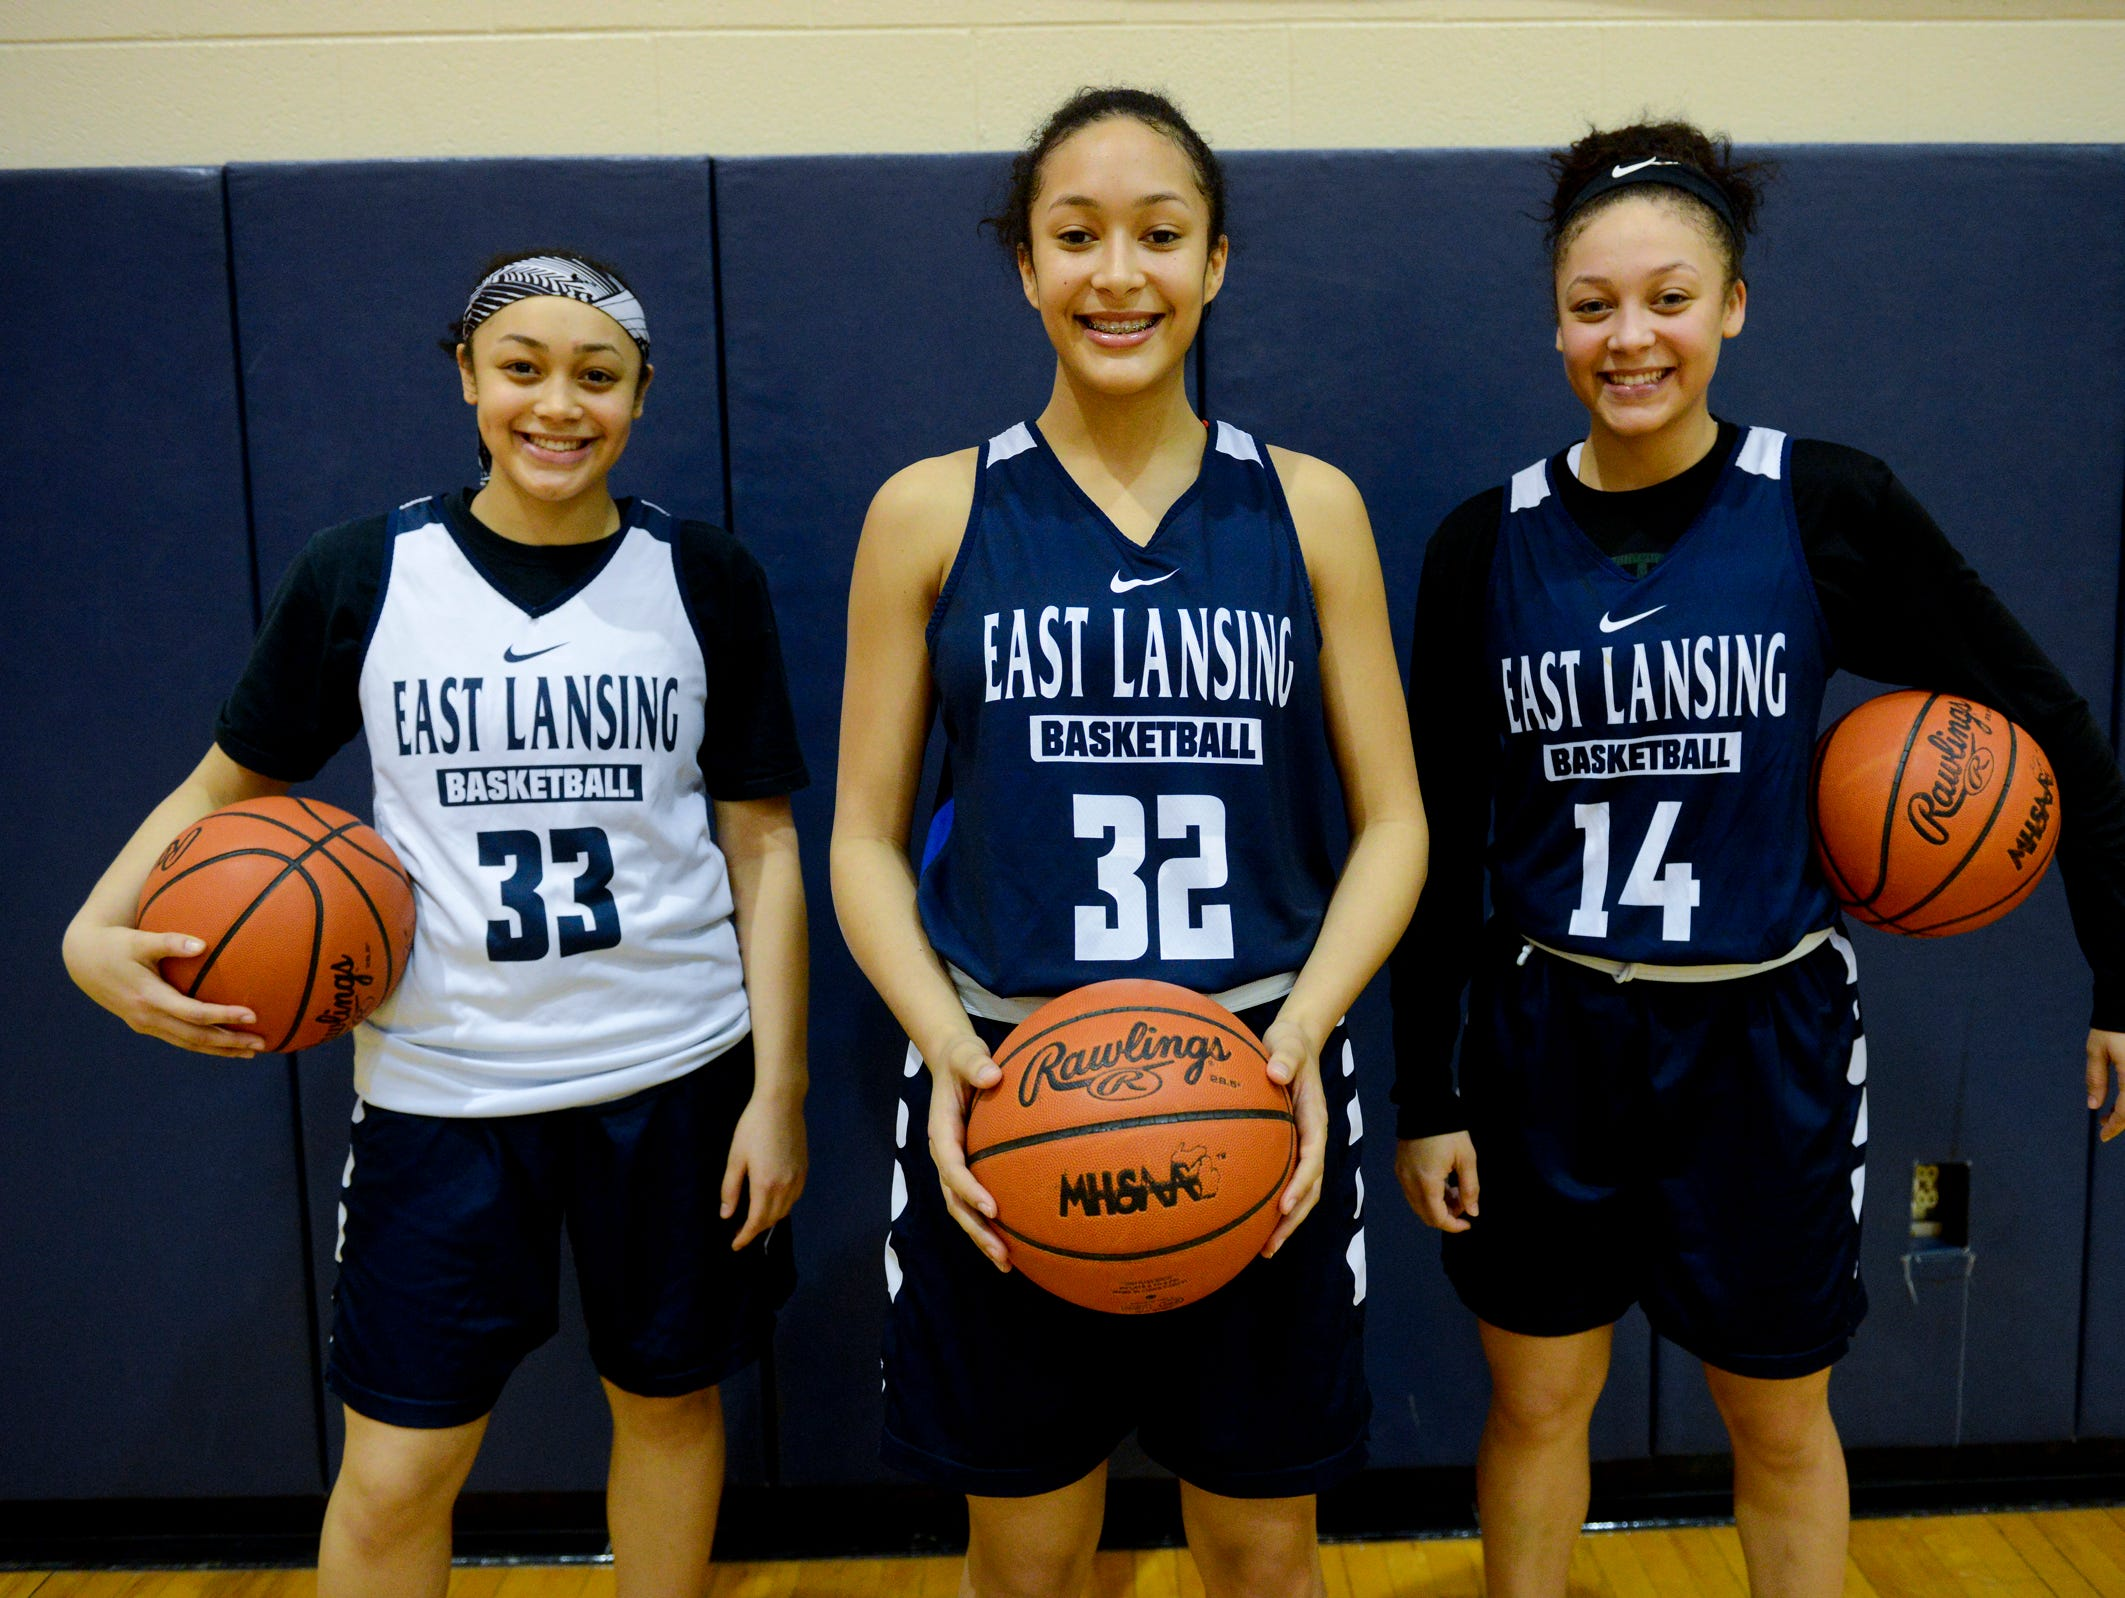 From left to right, sisters and East Lansing basketball players Aashawnti, Aaliyah and Aazh Nye pose for a portrait on Thursday, Feb. 23, 2017 at East Lansing High School.